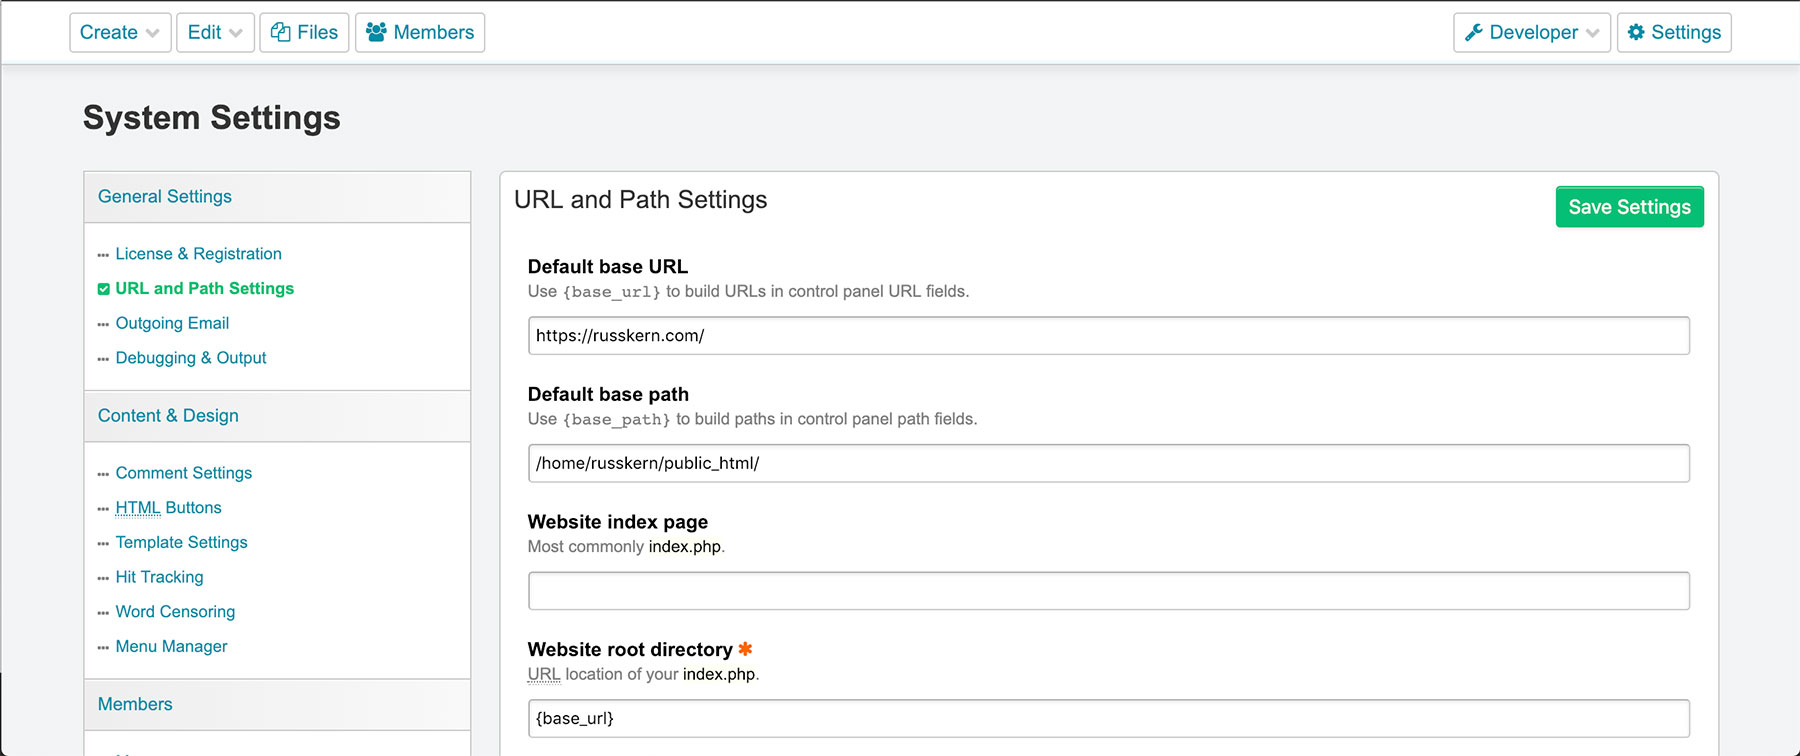 URL & Path Settings Page